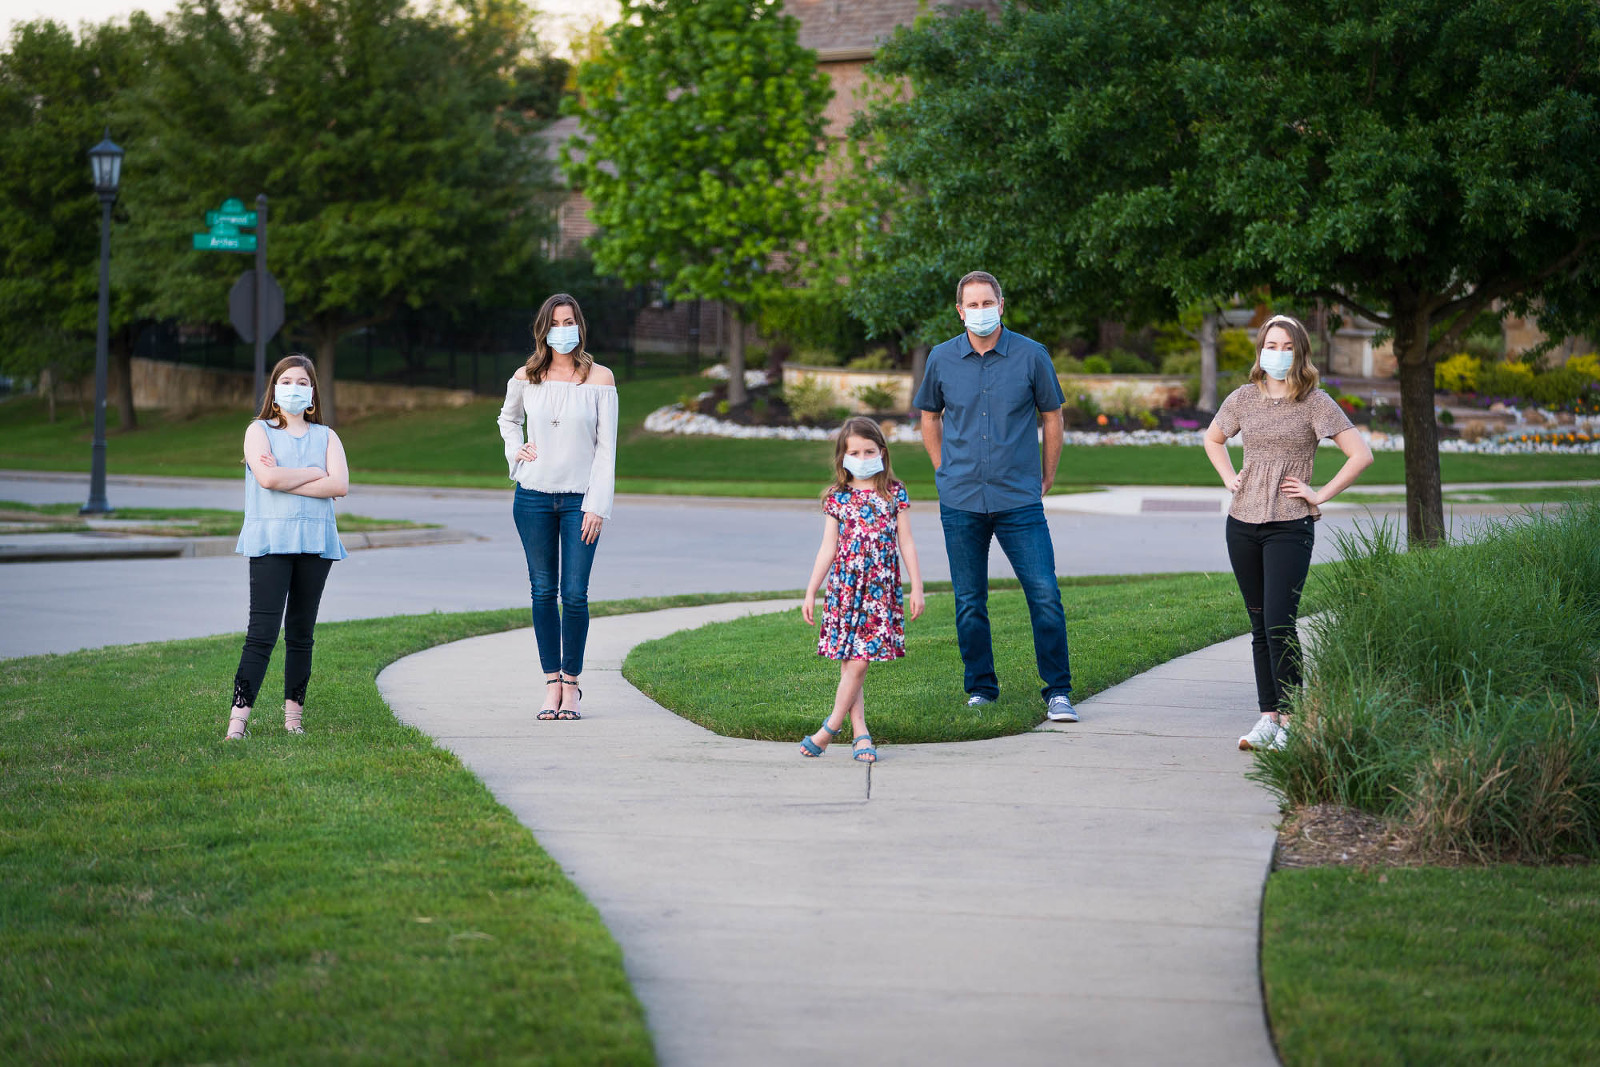 Candid, Families, Kids, Portraiture, dallas photographer, frisco family, frisco family photographer, outdoor, prosper family photographer, prosper family photography, prosper friends, prosper kids photographer, prosper photographer, prosper texas, prospertx